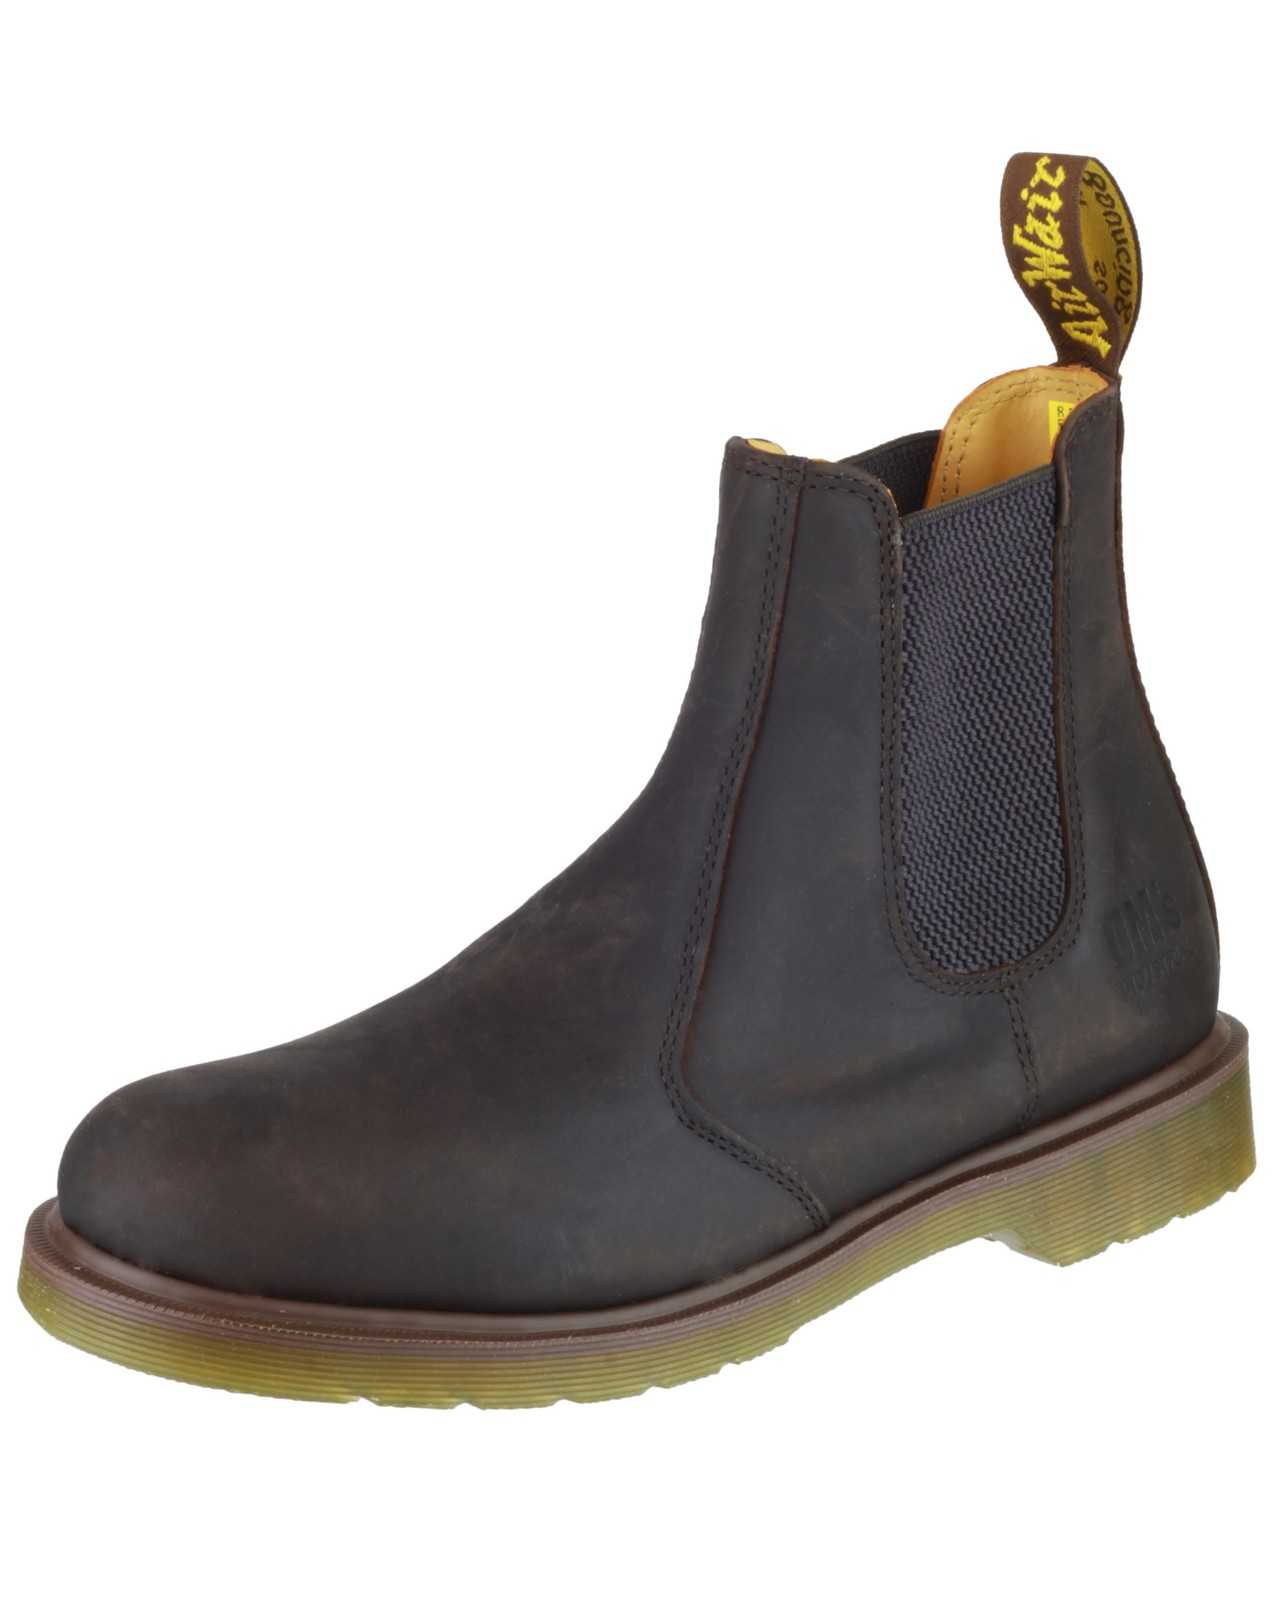 livewarext.cf has a vast selection of Doc Martens for you to choose from - boots, oxfords, sandals, lace up shoes, and more. We carry all the popular styles, including the boot, 3-eye shoe, Chelsea boot, and Pascal 8-eye boot.